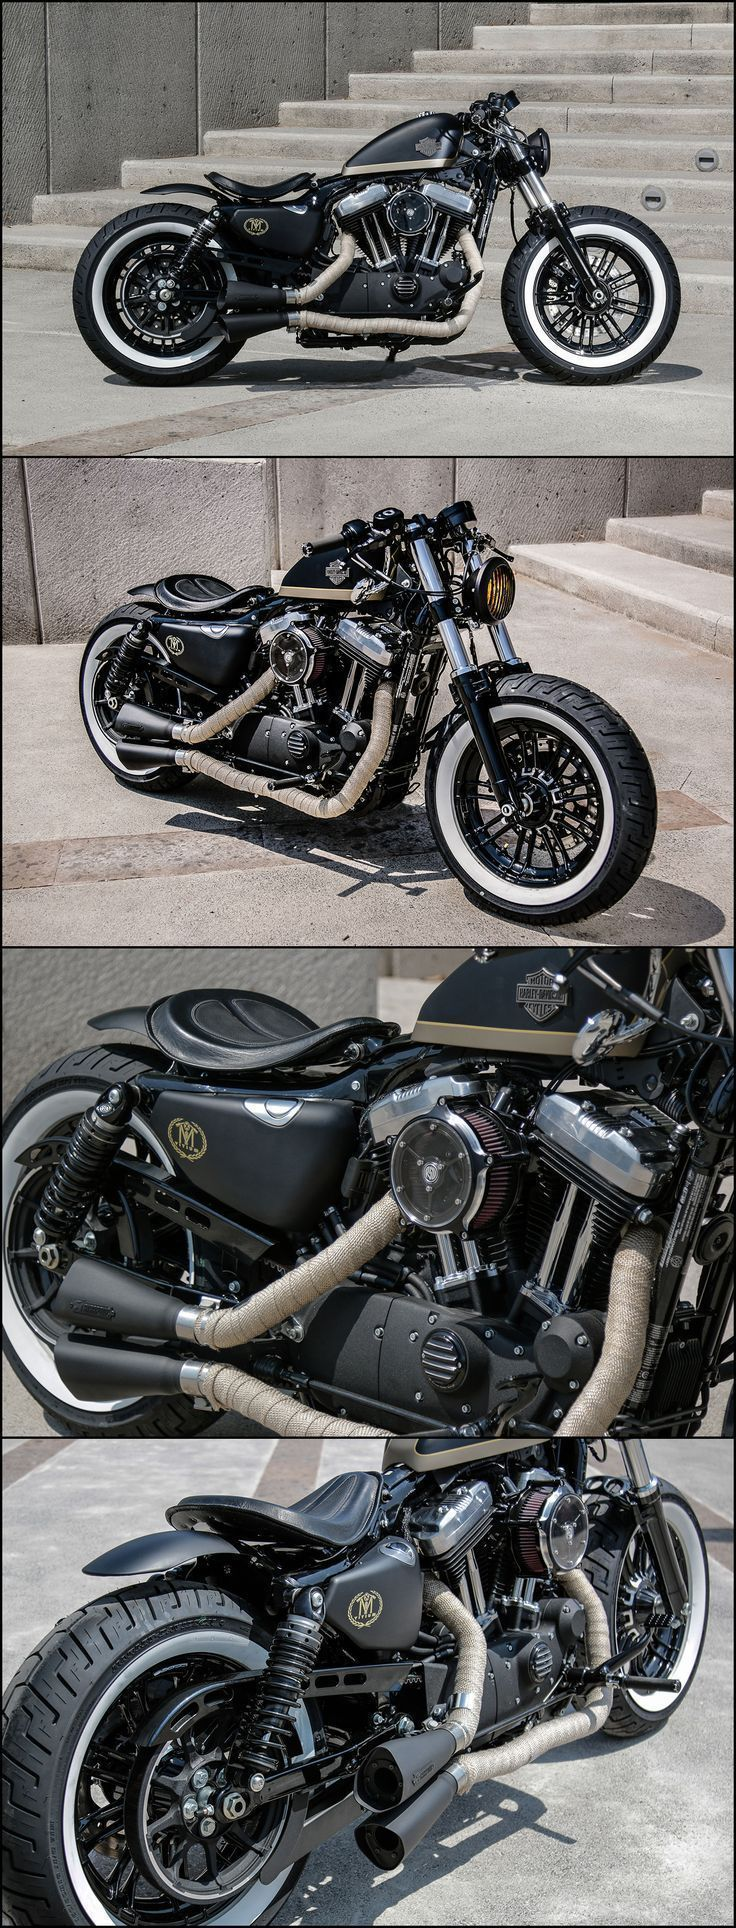 aftercycles | harley-davidson sportster forty-eight | custom bobber #harleydavidsonbobbersblack #harleydavidsonsportsterfortyeight #harleydavidsonbobbersfortyeight